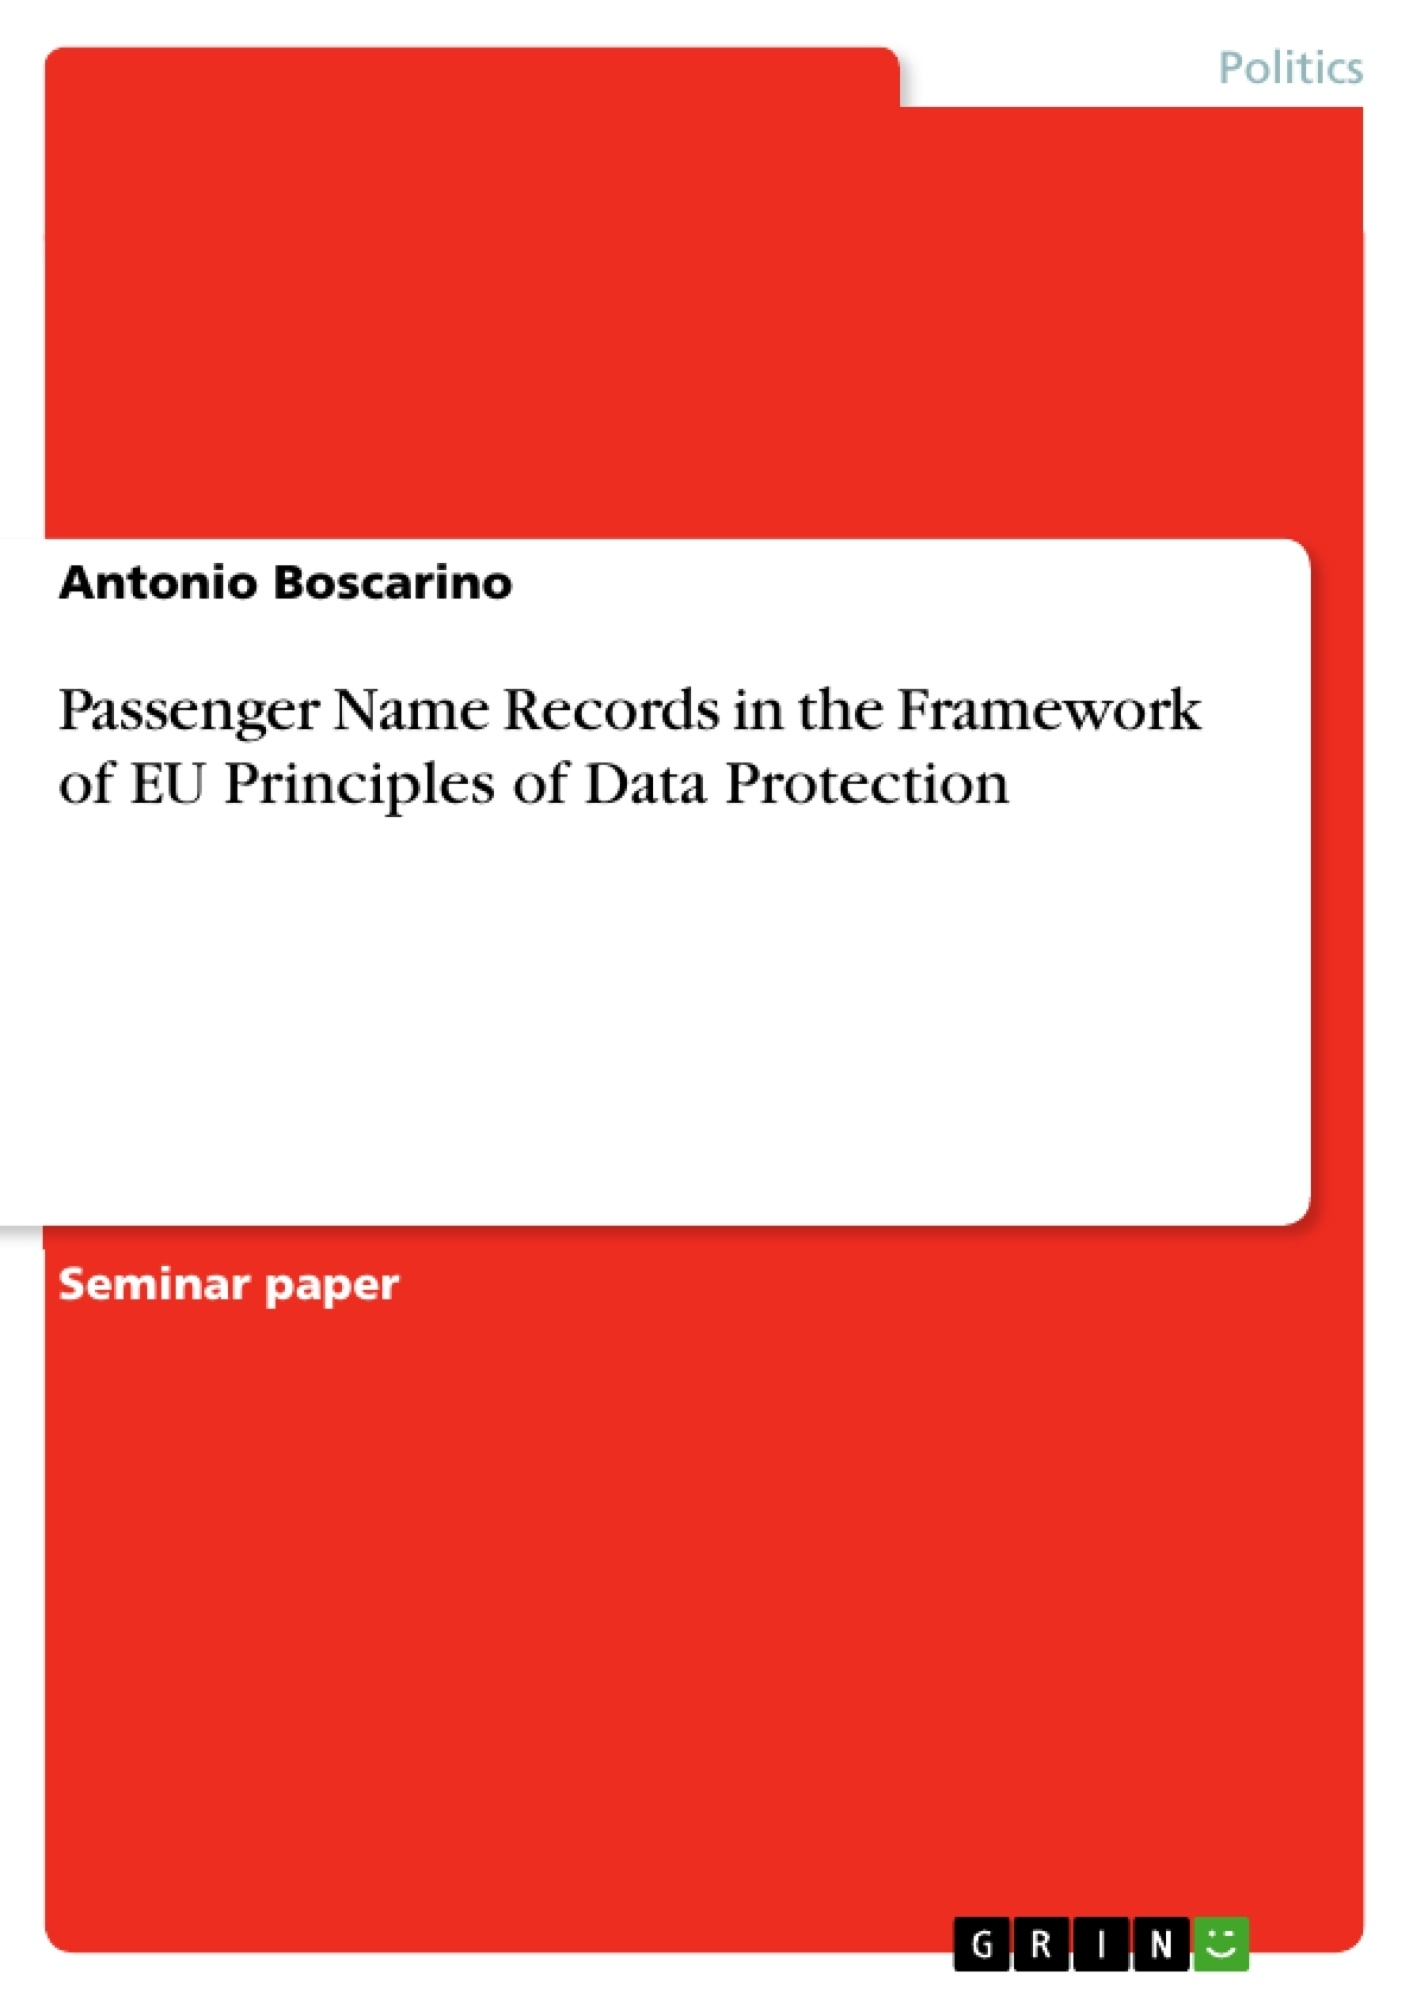 Title: Passenger Name Records in the Framework of EU Principles of Data Protection